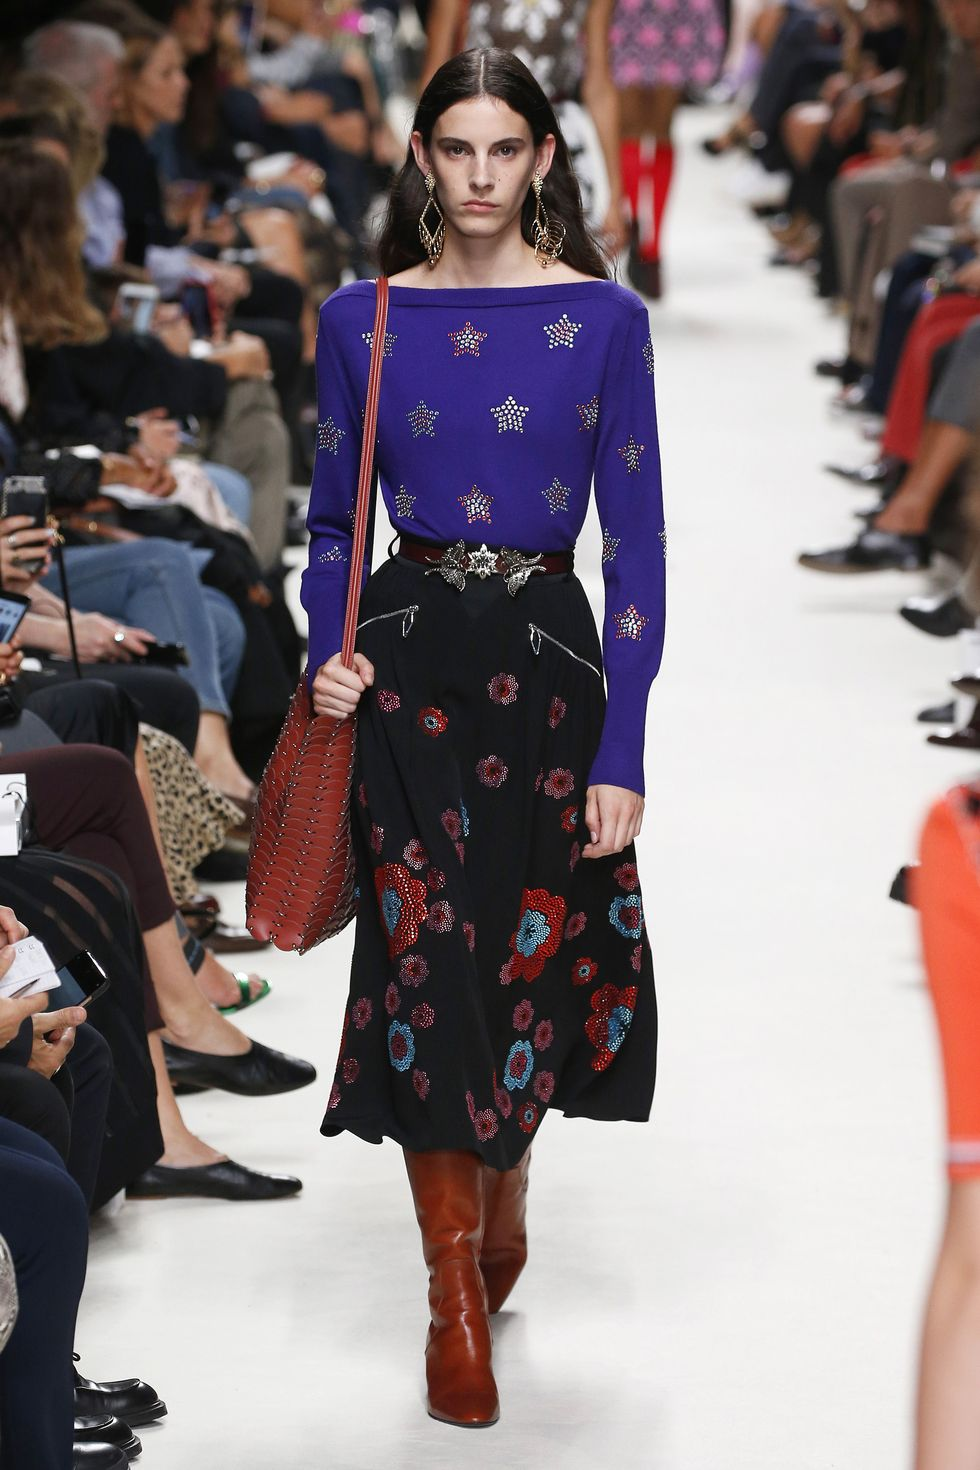 Top 20 Best Looks From Paris Fashion Week 2020